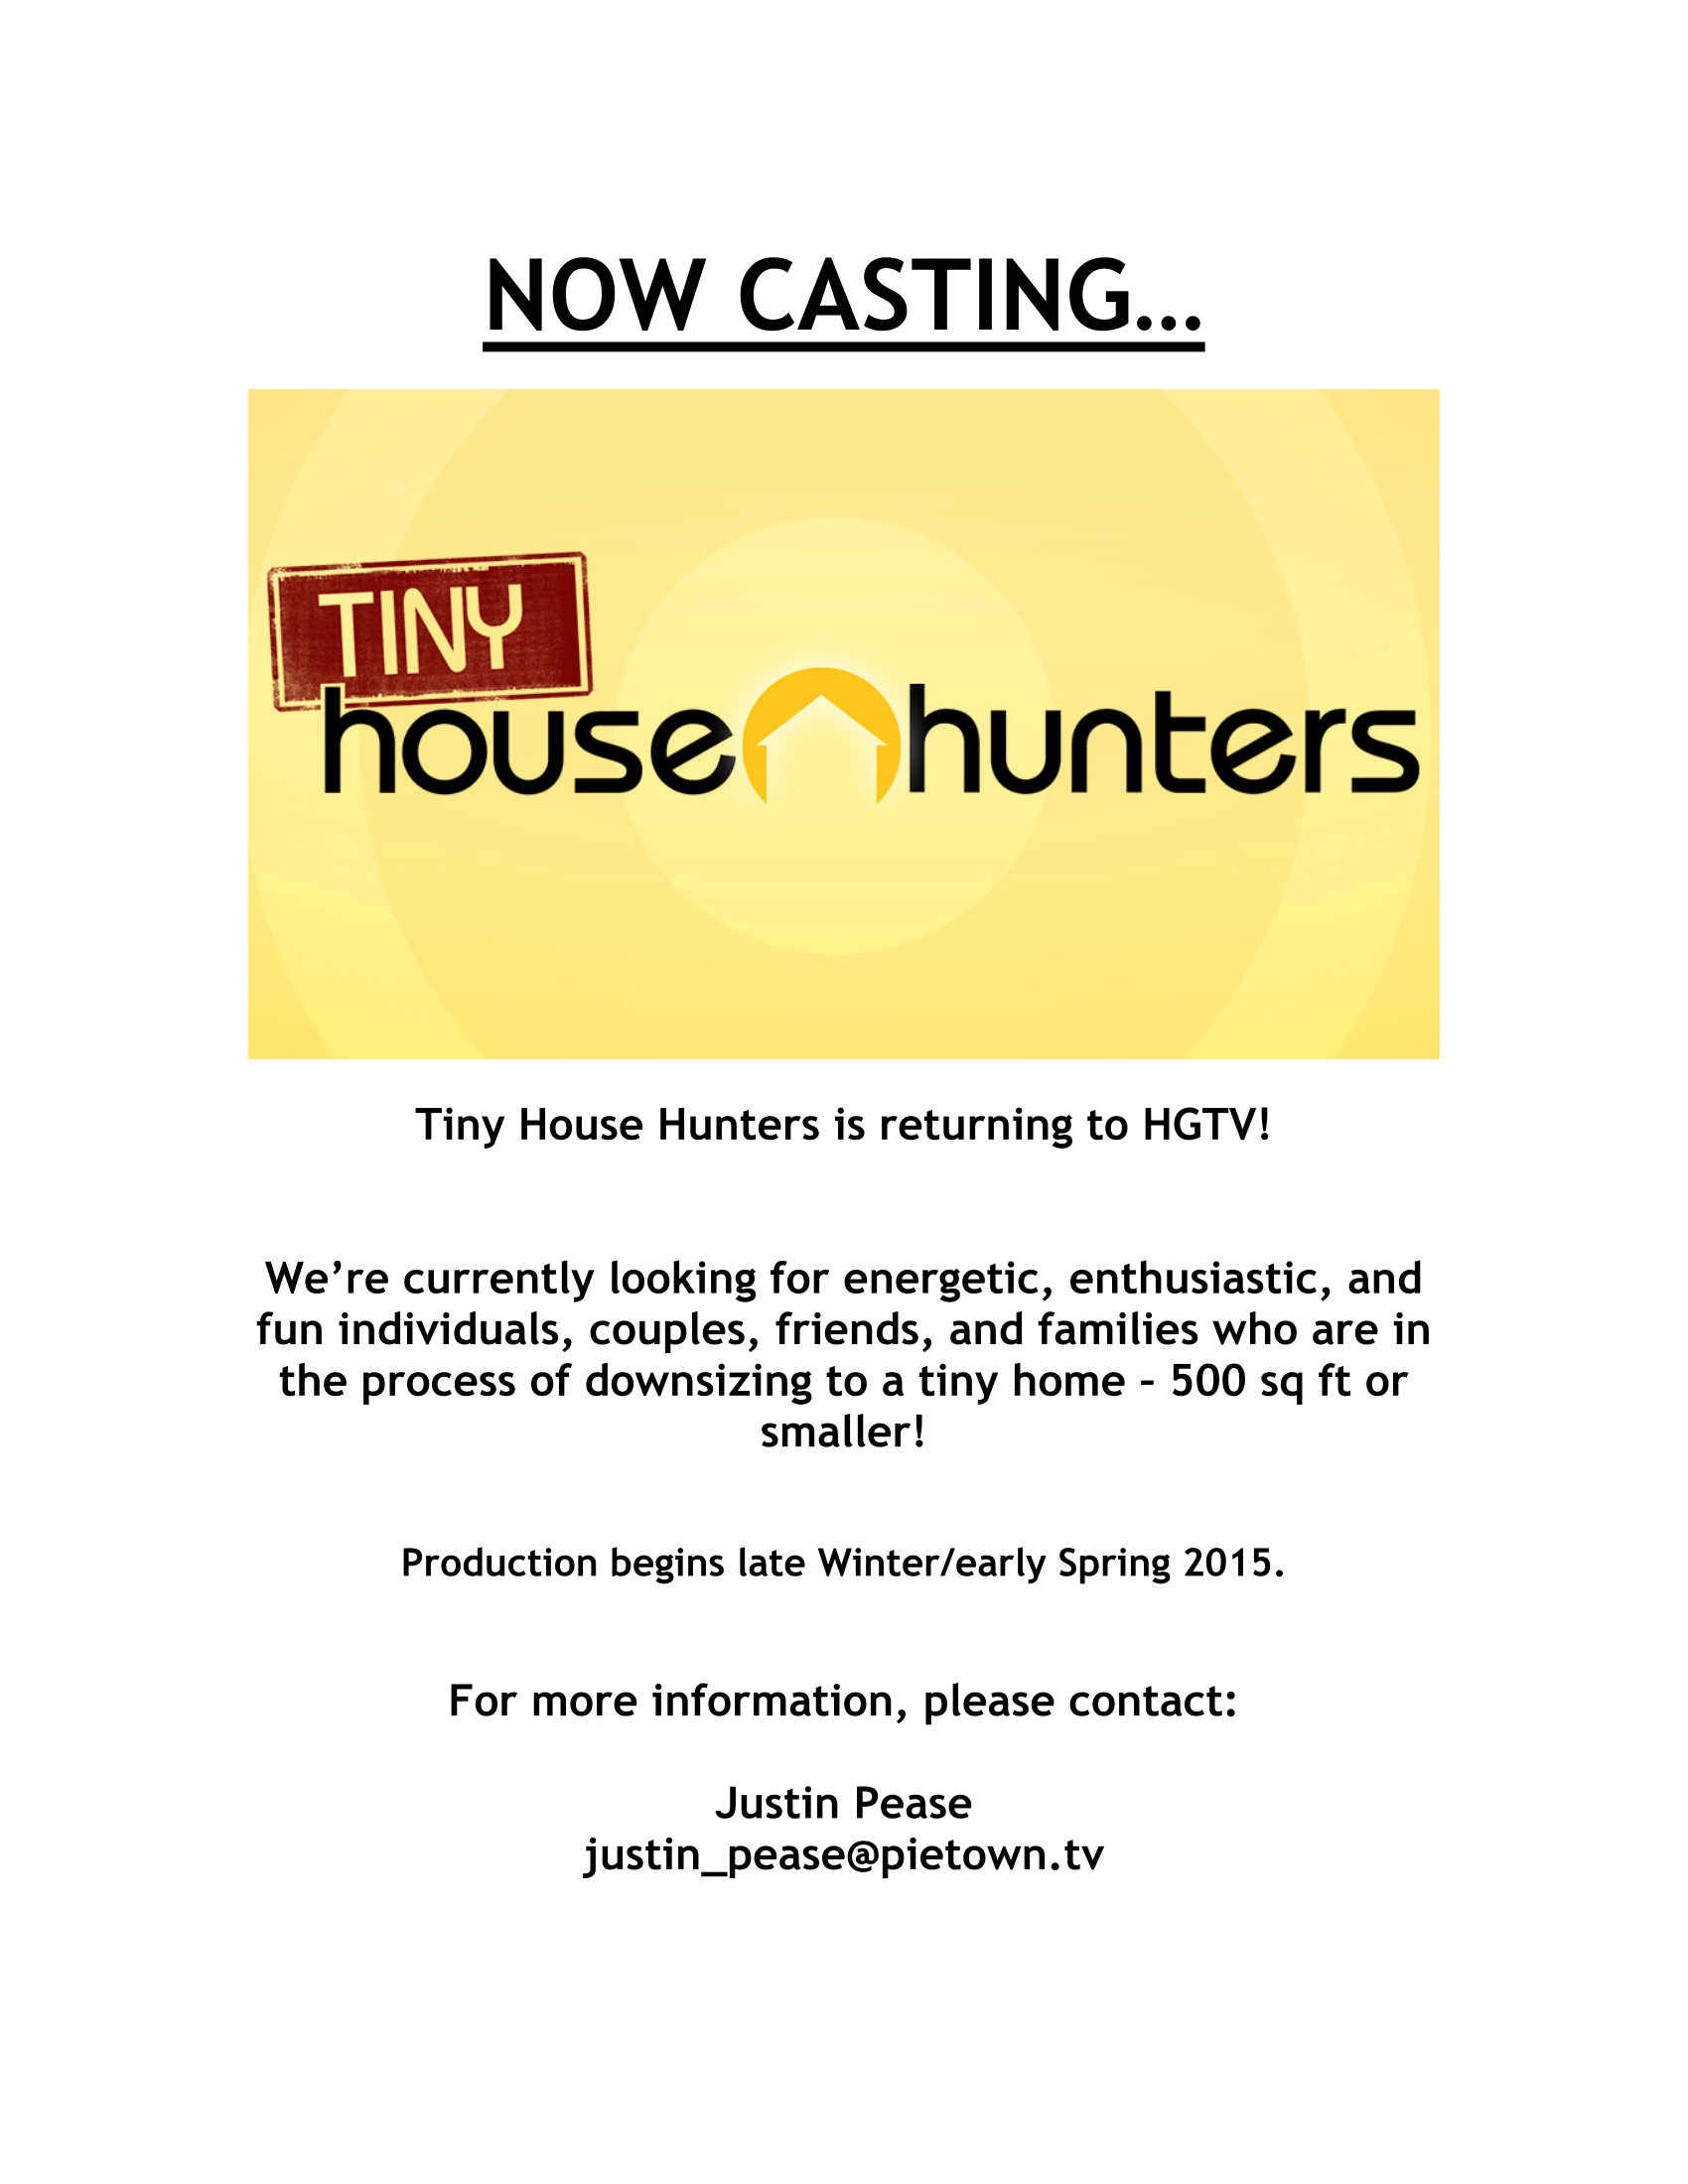 Casting Call For Tiny House Hunters Micro Showcase